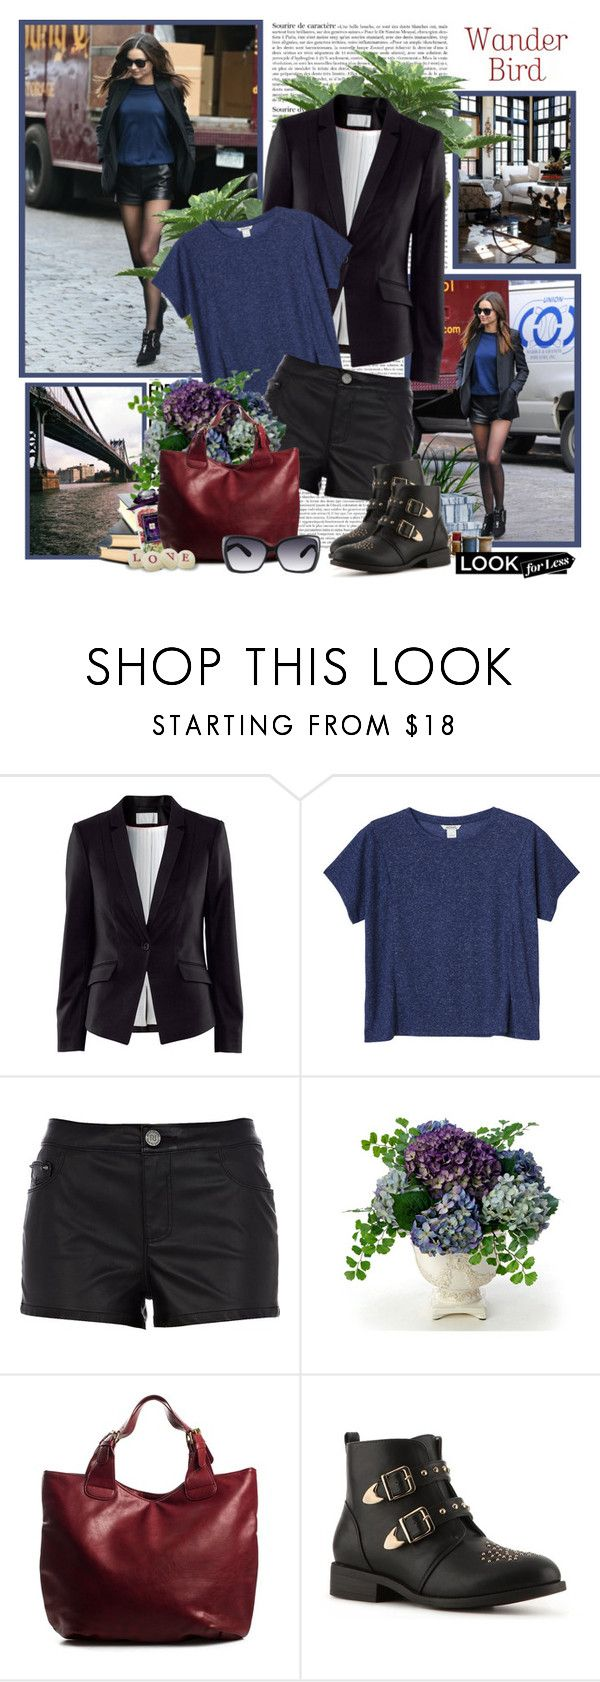 """Look for less - Miranda Kerr"" by helleka ❤ liked on Polyvore featuring Emma Watson, Prada, Kerr®, H&M, Monki, River Island, Distinctive Designs, Jo Malone, Pieces and Wanted"